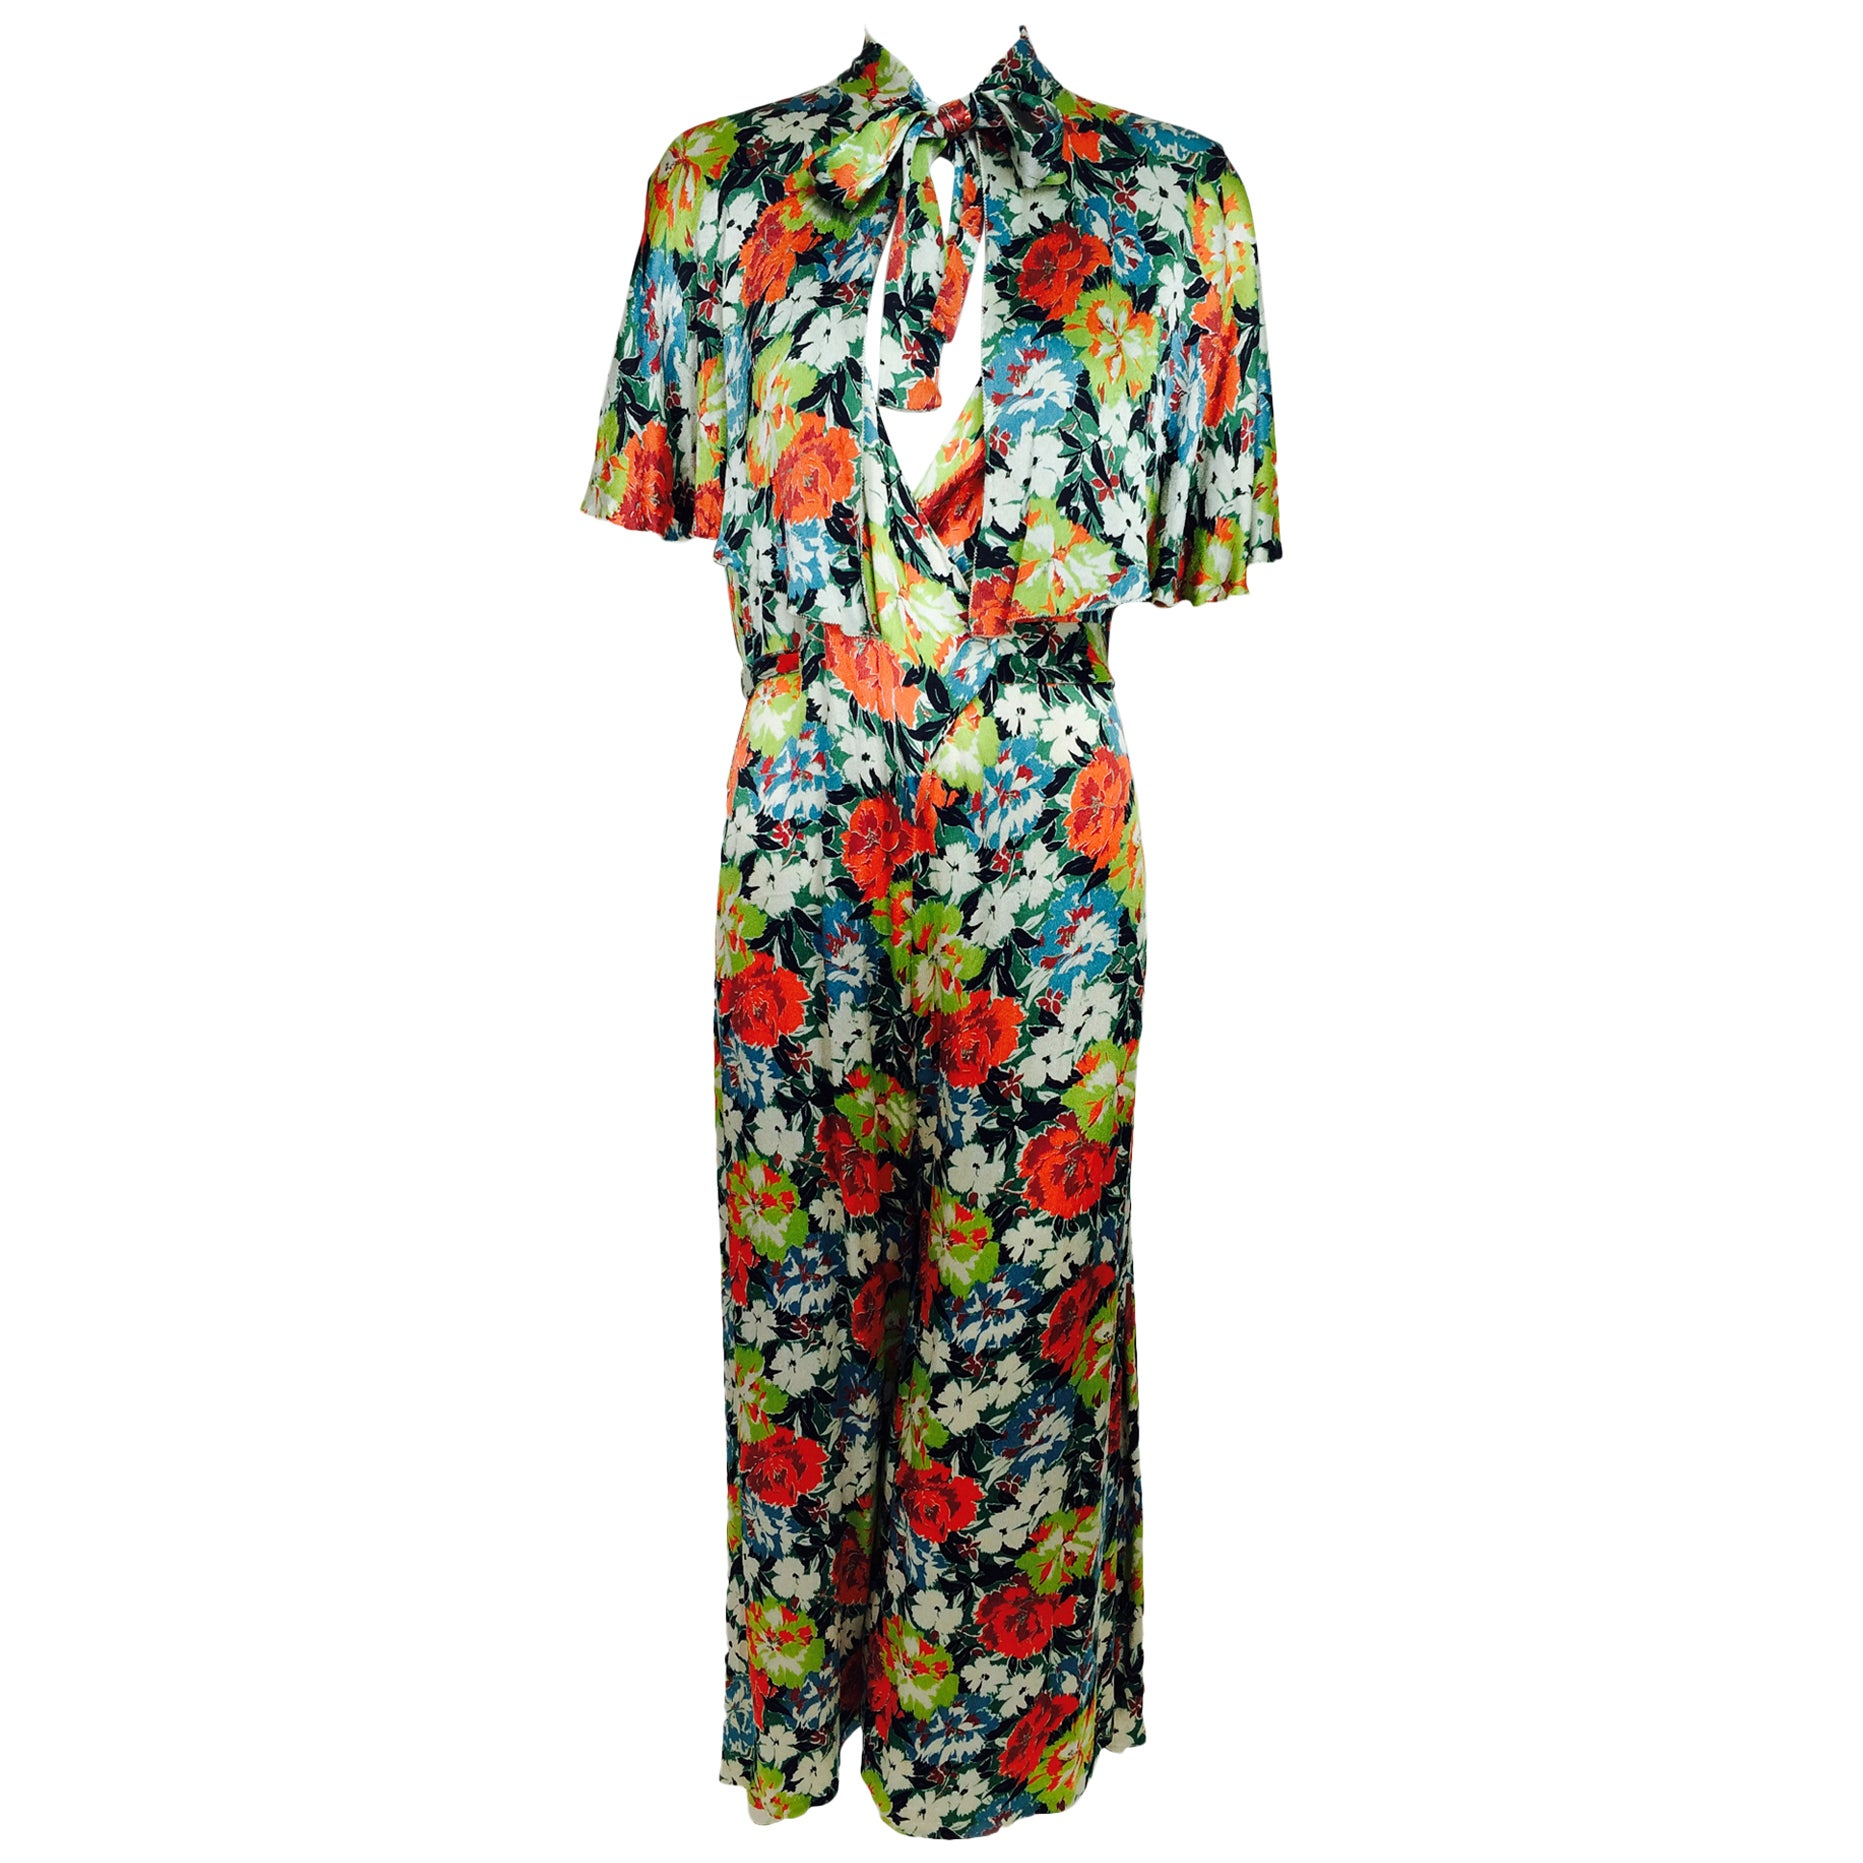 7d830e60e86d04 Vintage floral printed silk crepe satin beach pajamas and cape 1920s For  Sale at 1stdibs